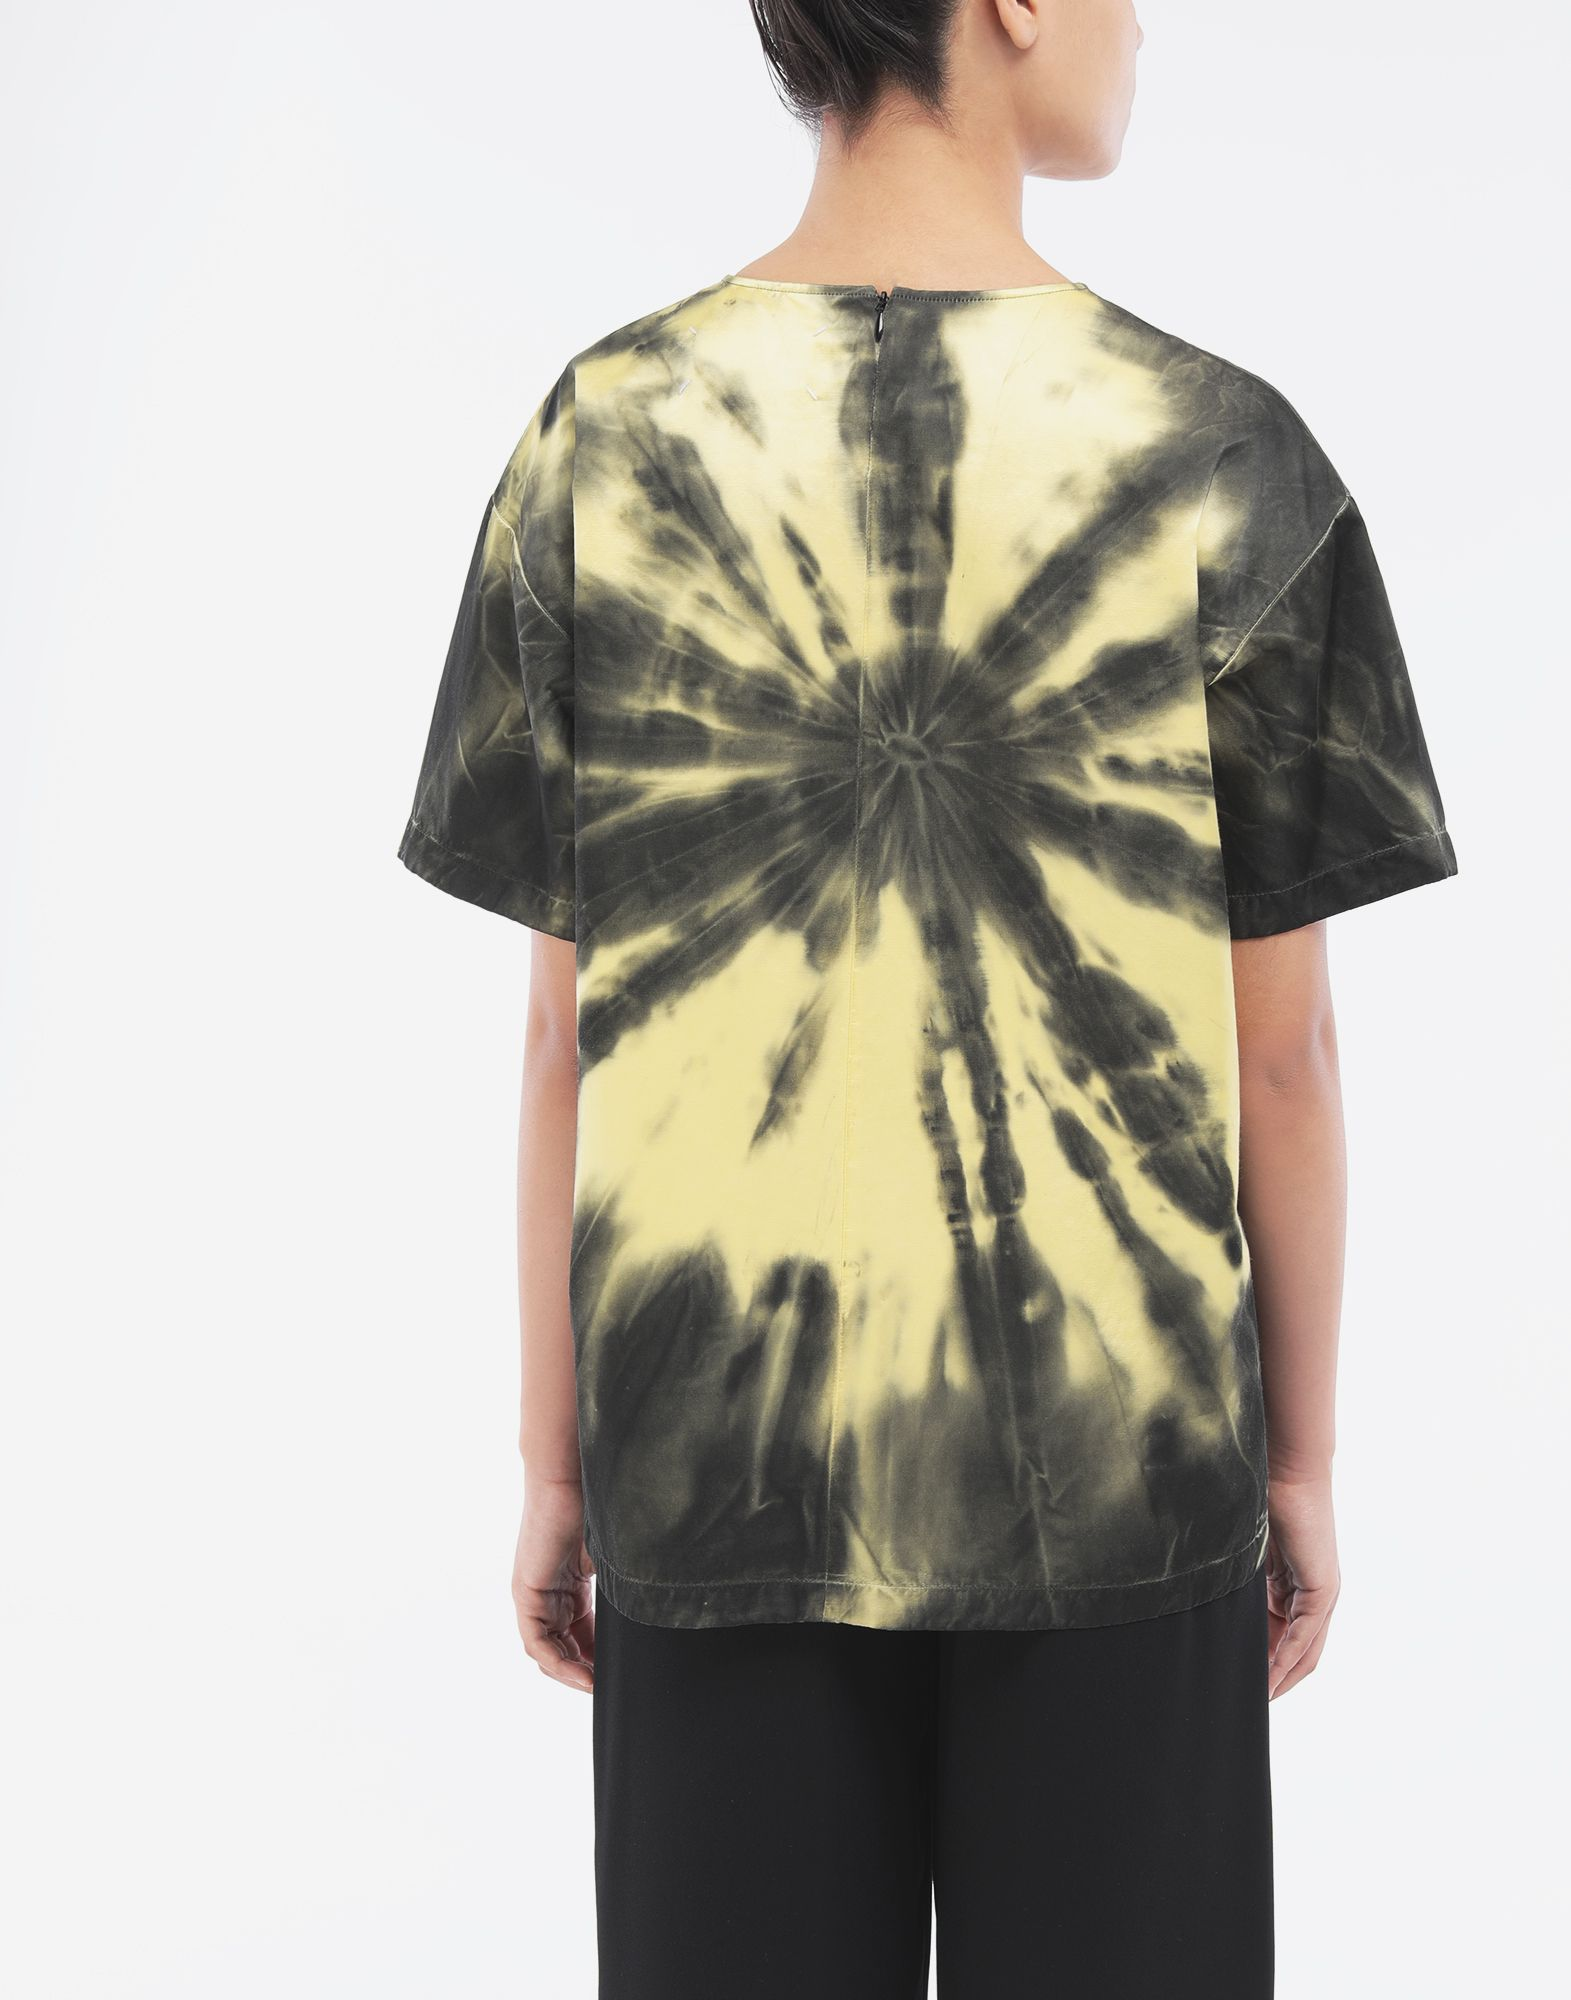 MAISON MARGIELA Tie-dye T-shirt Top Woman e